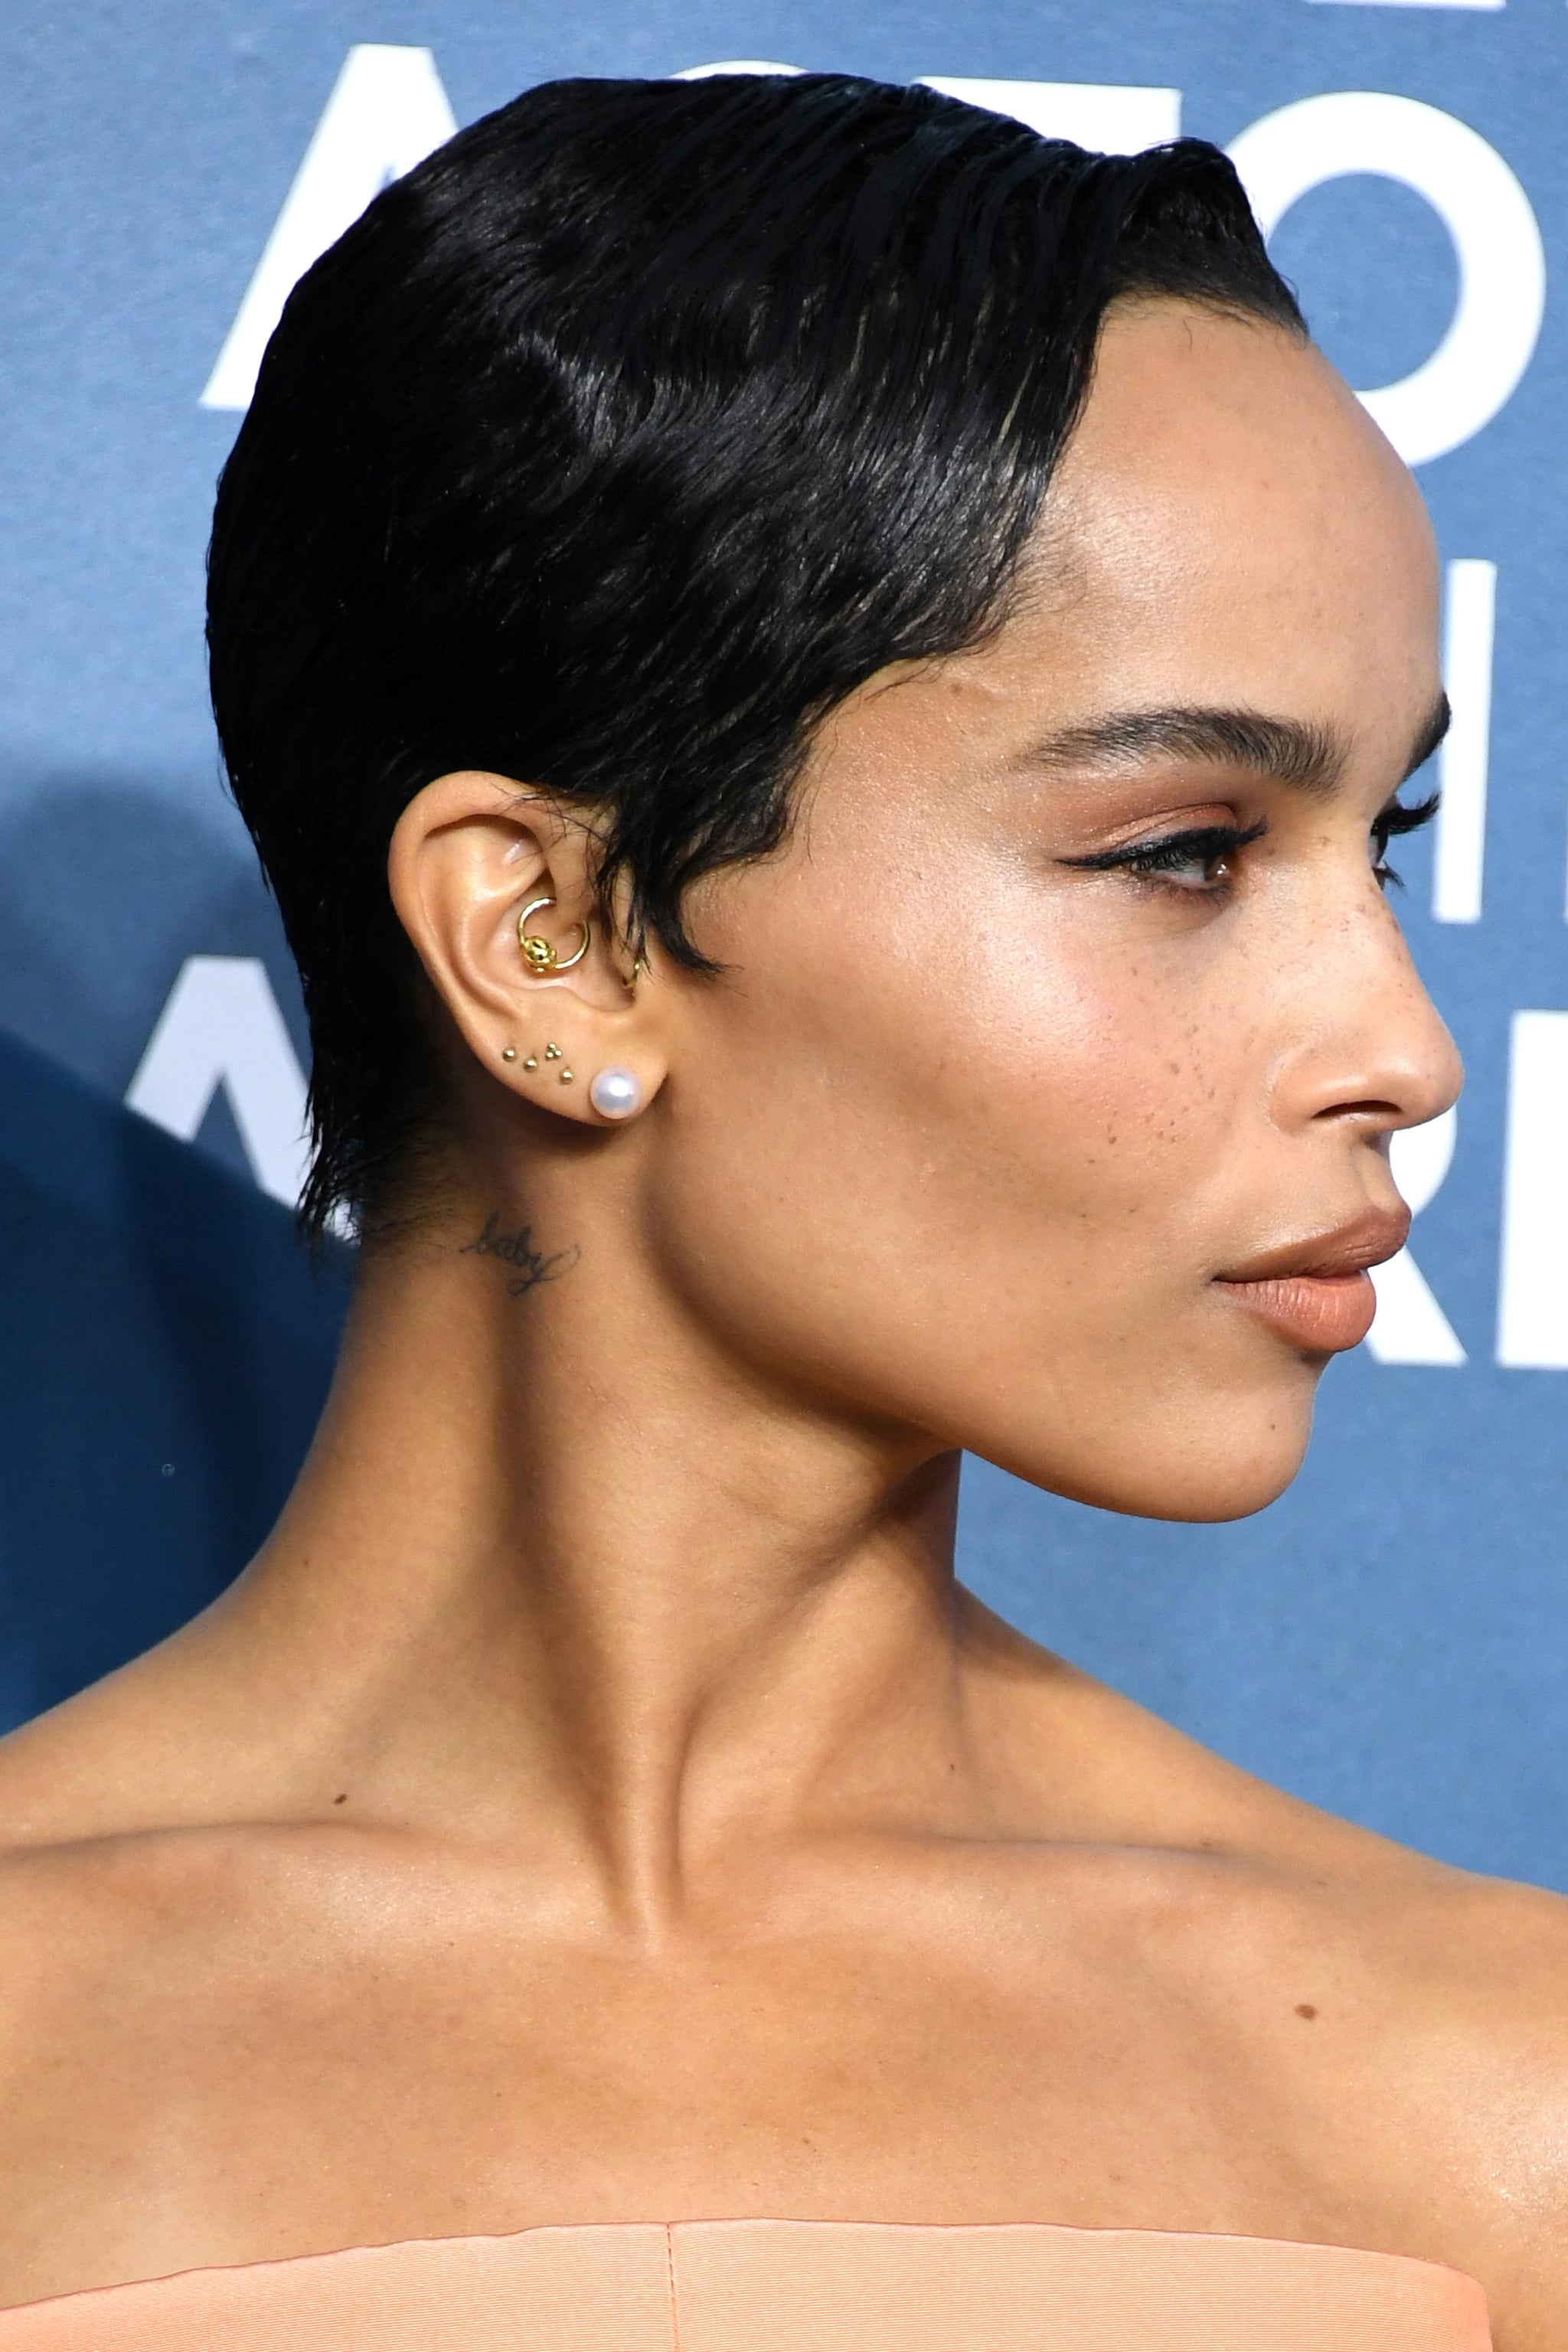 What To Know About Constellation Piercings Popsugar Beauty